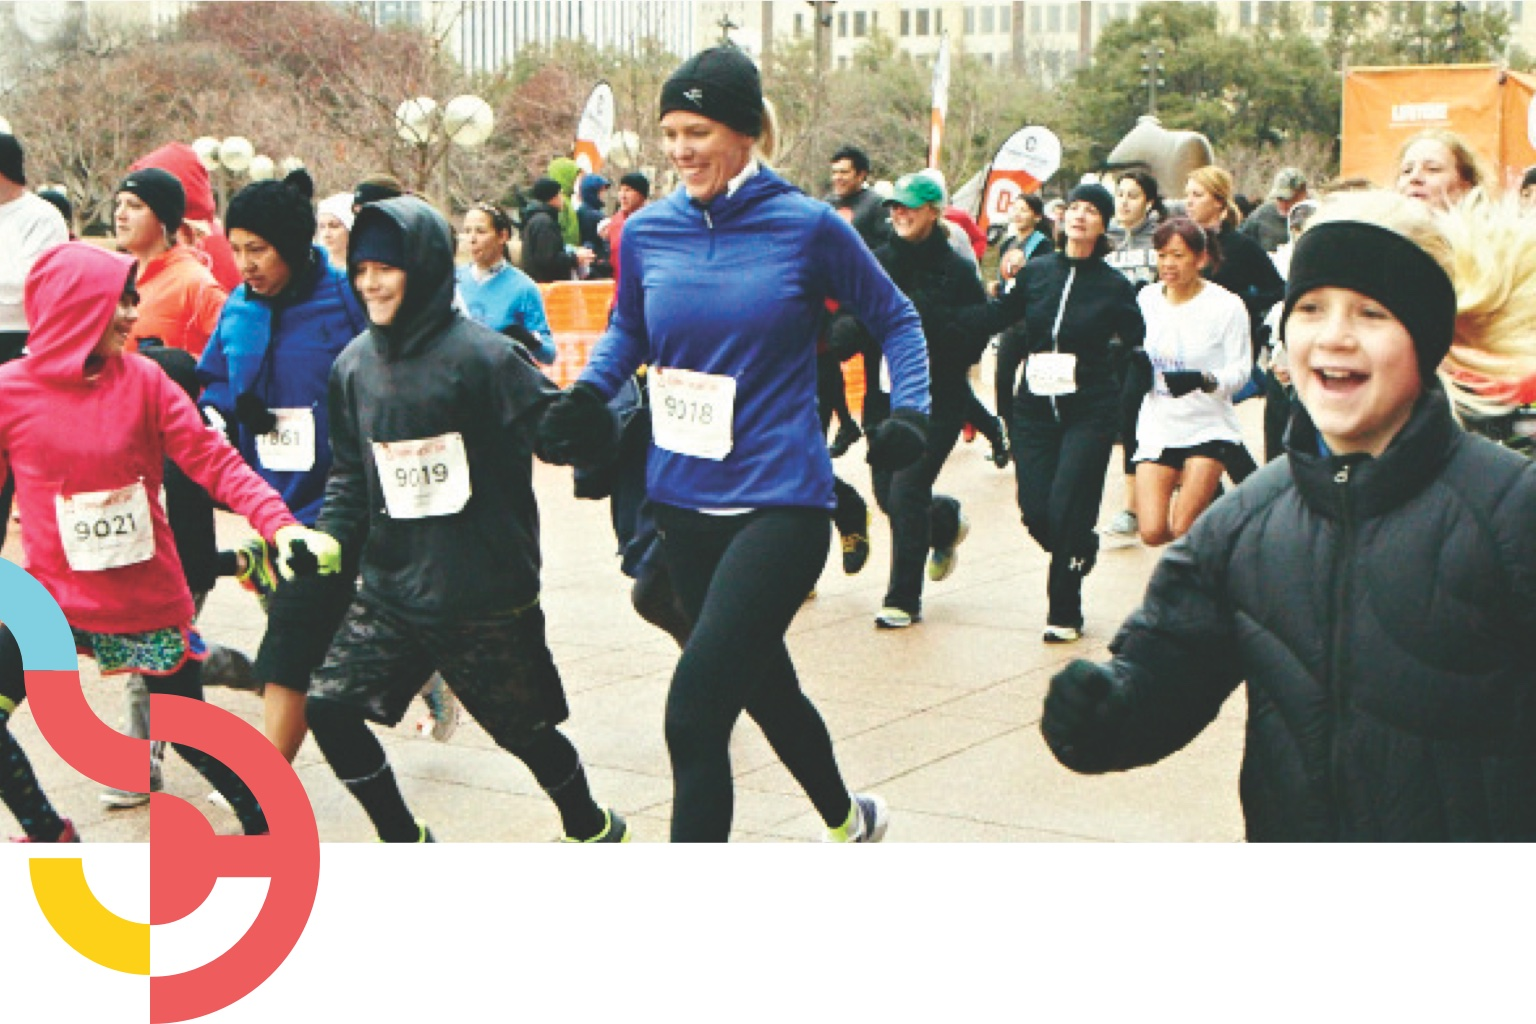 Crowd of people wearing winter gear running outside at a 5K race